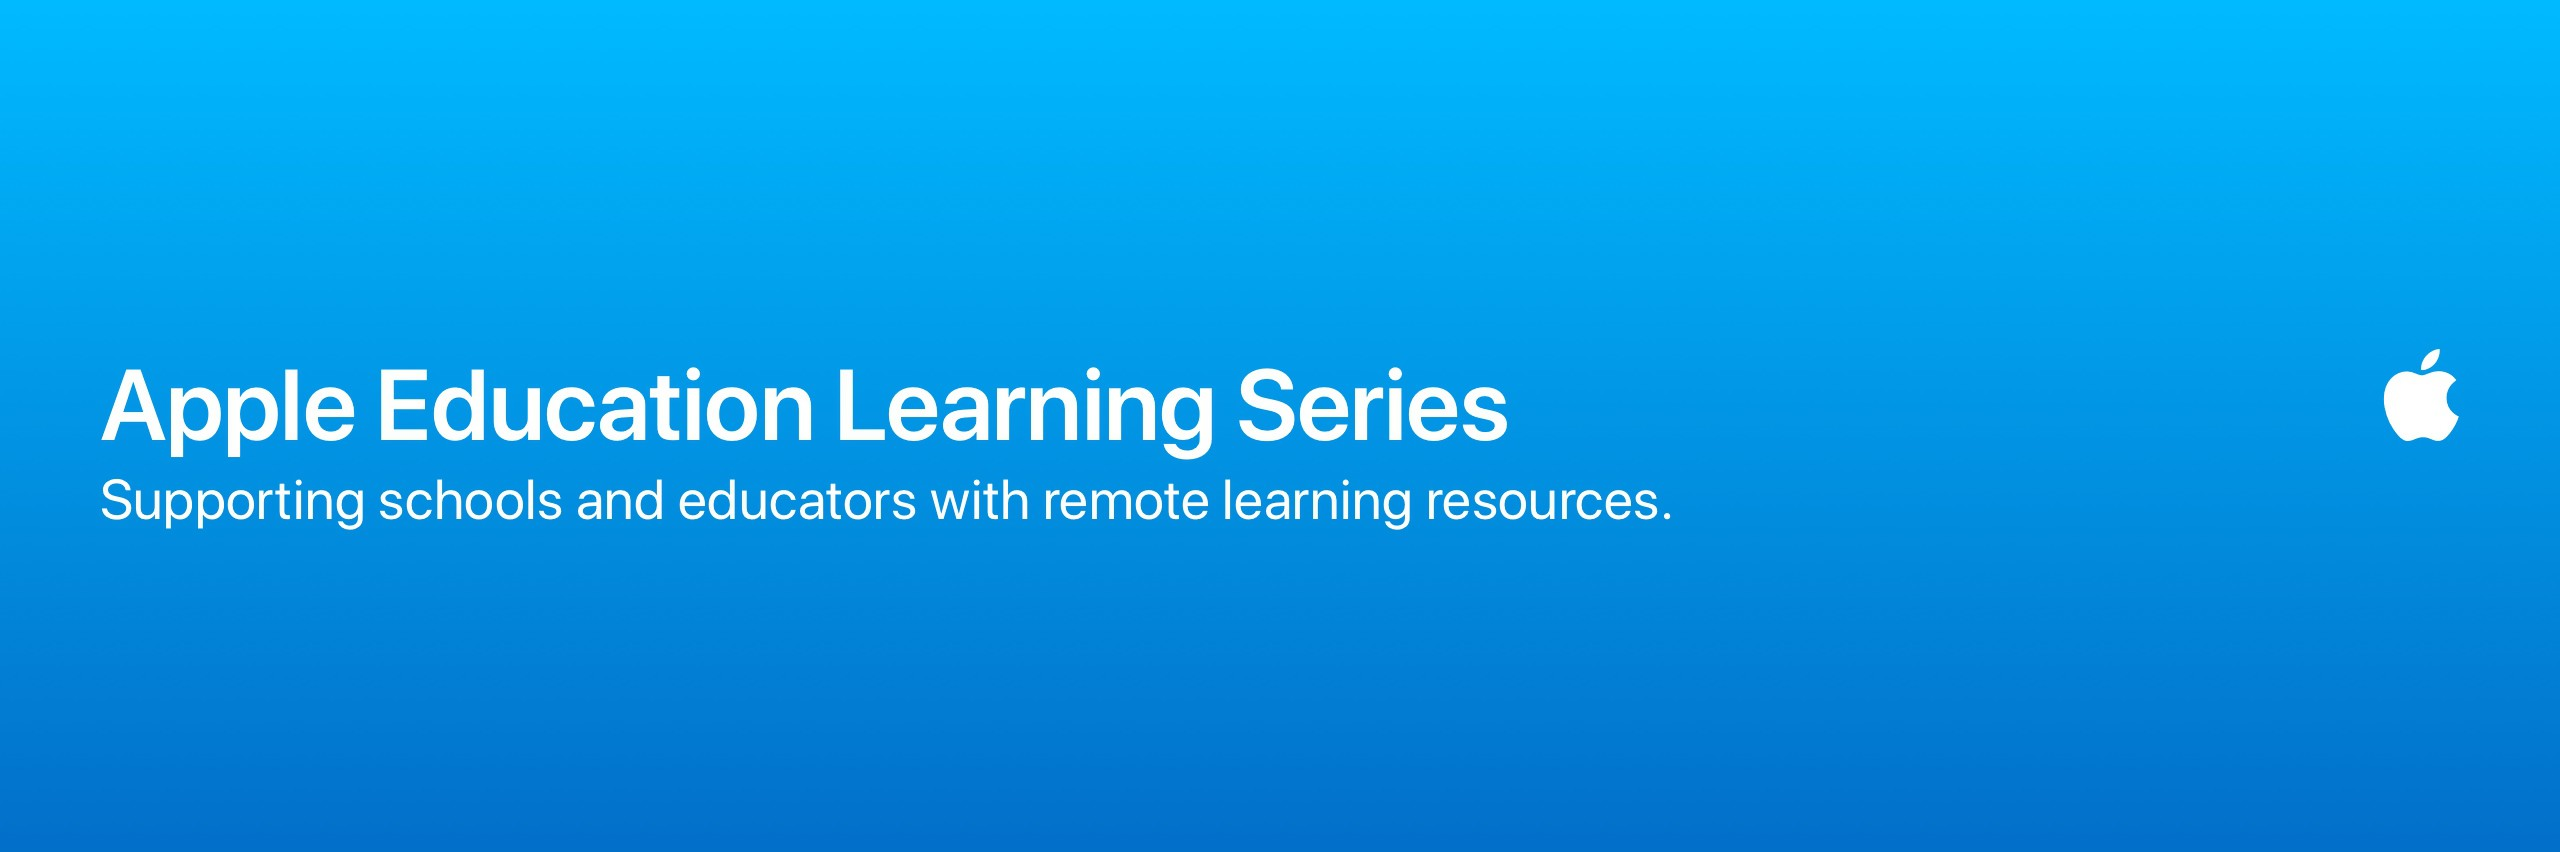 Apple Education Learning Series | Worldwide